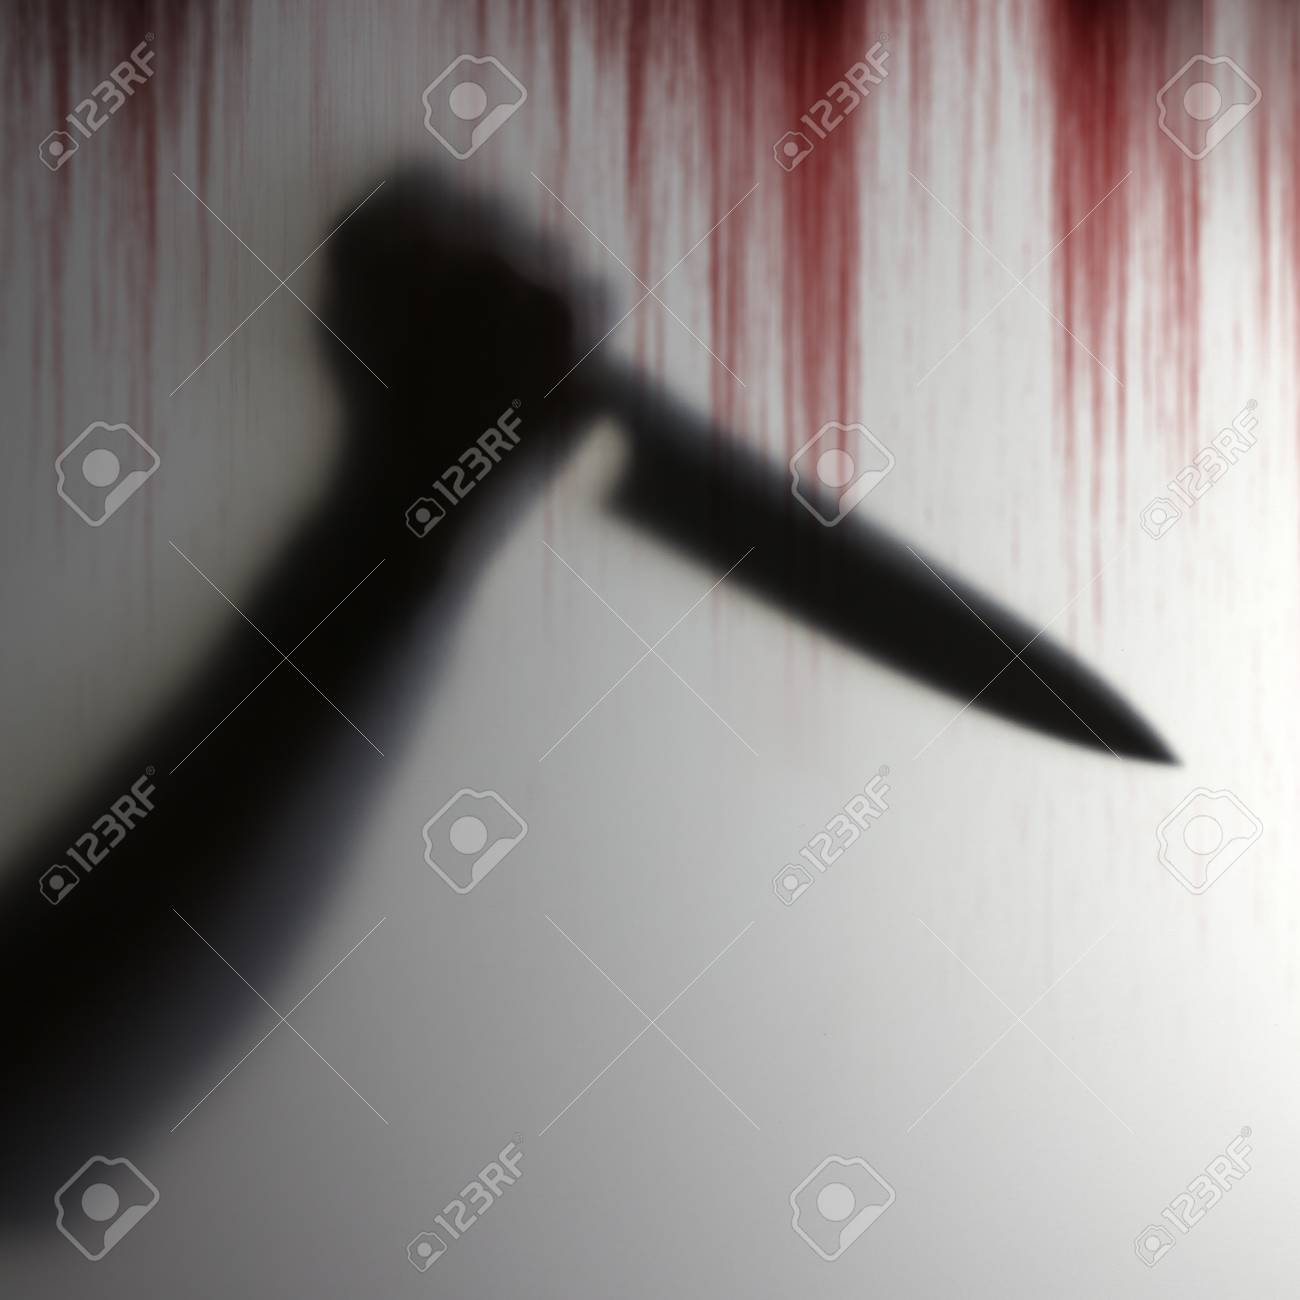 Shadow of hand holding knife to pierce the victim behind a transparent object with bloody background scary - 93464902